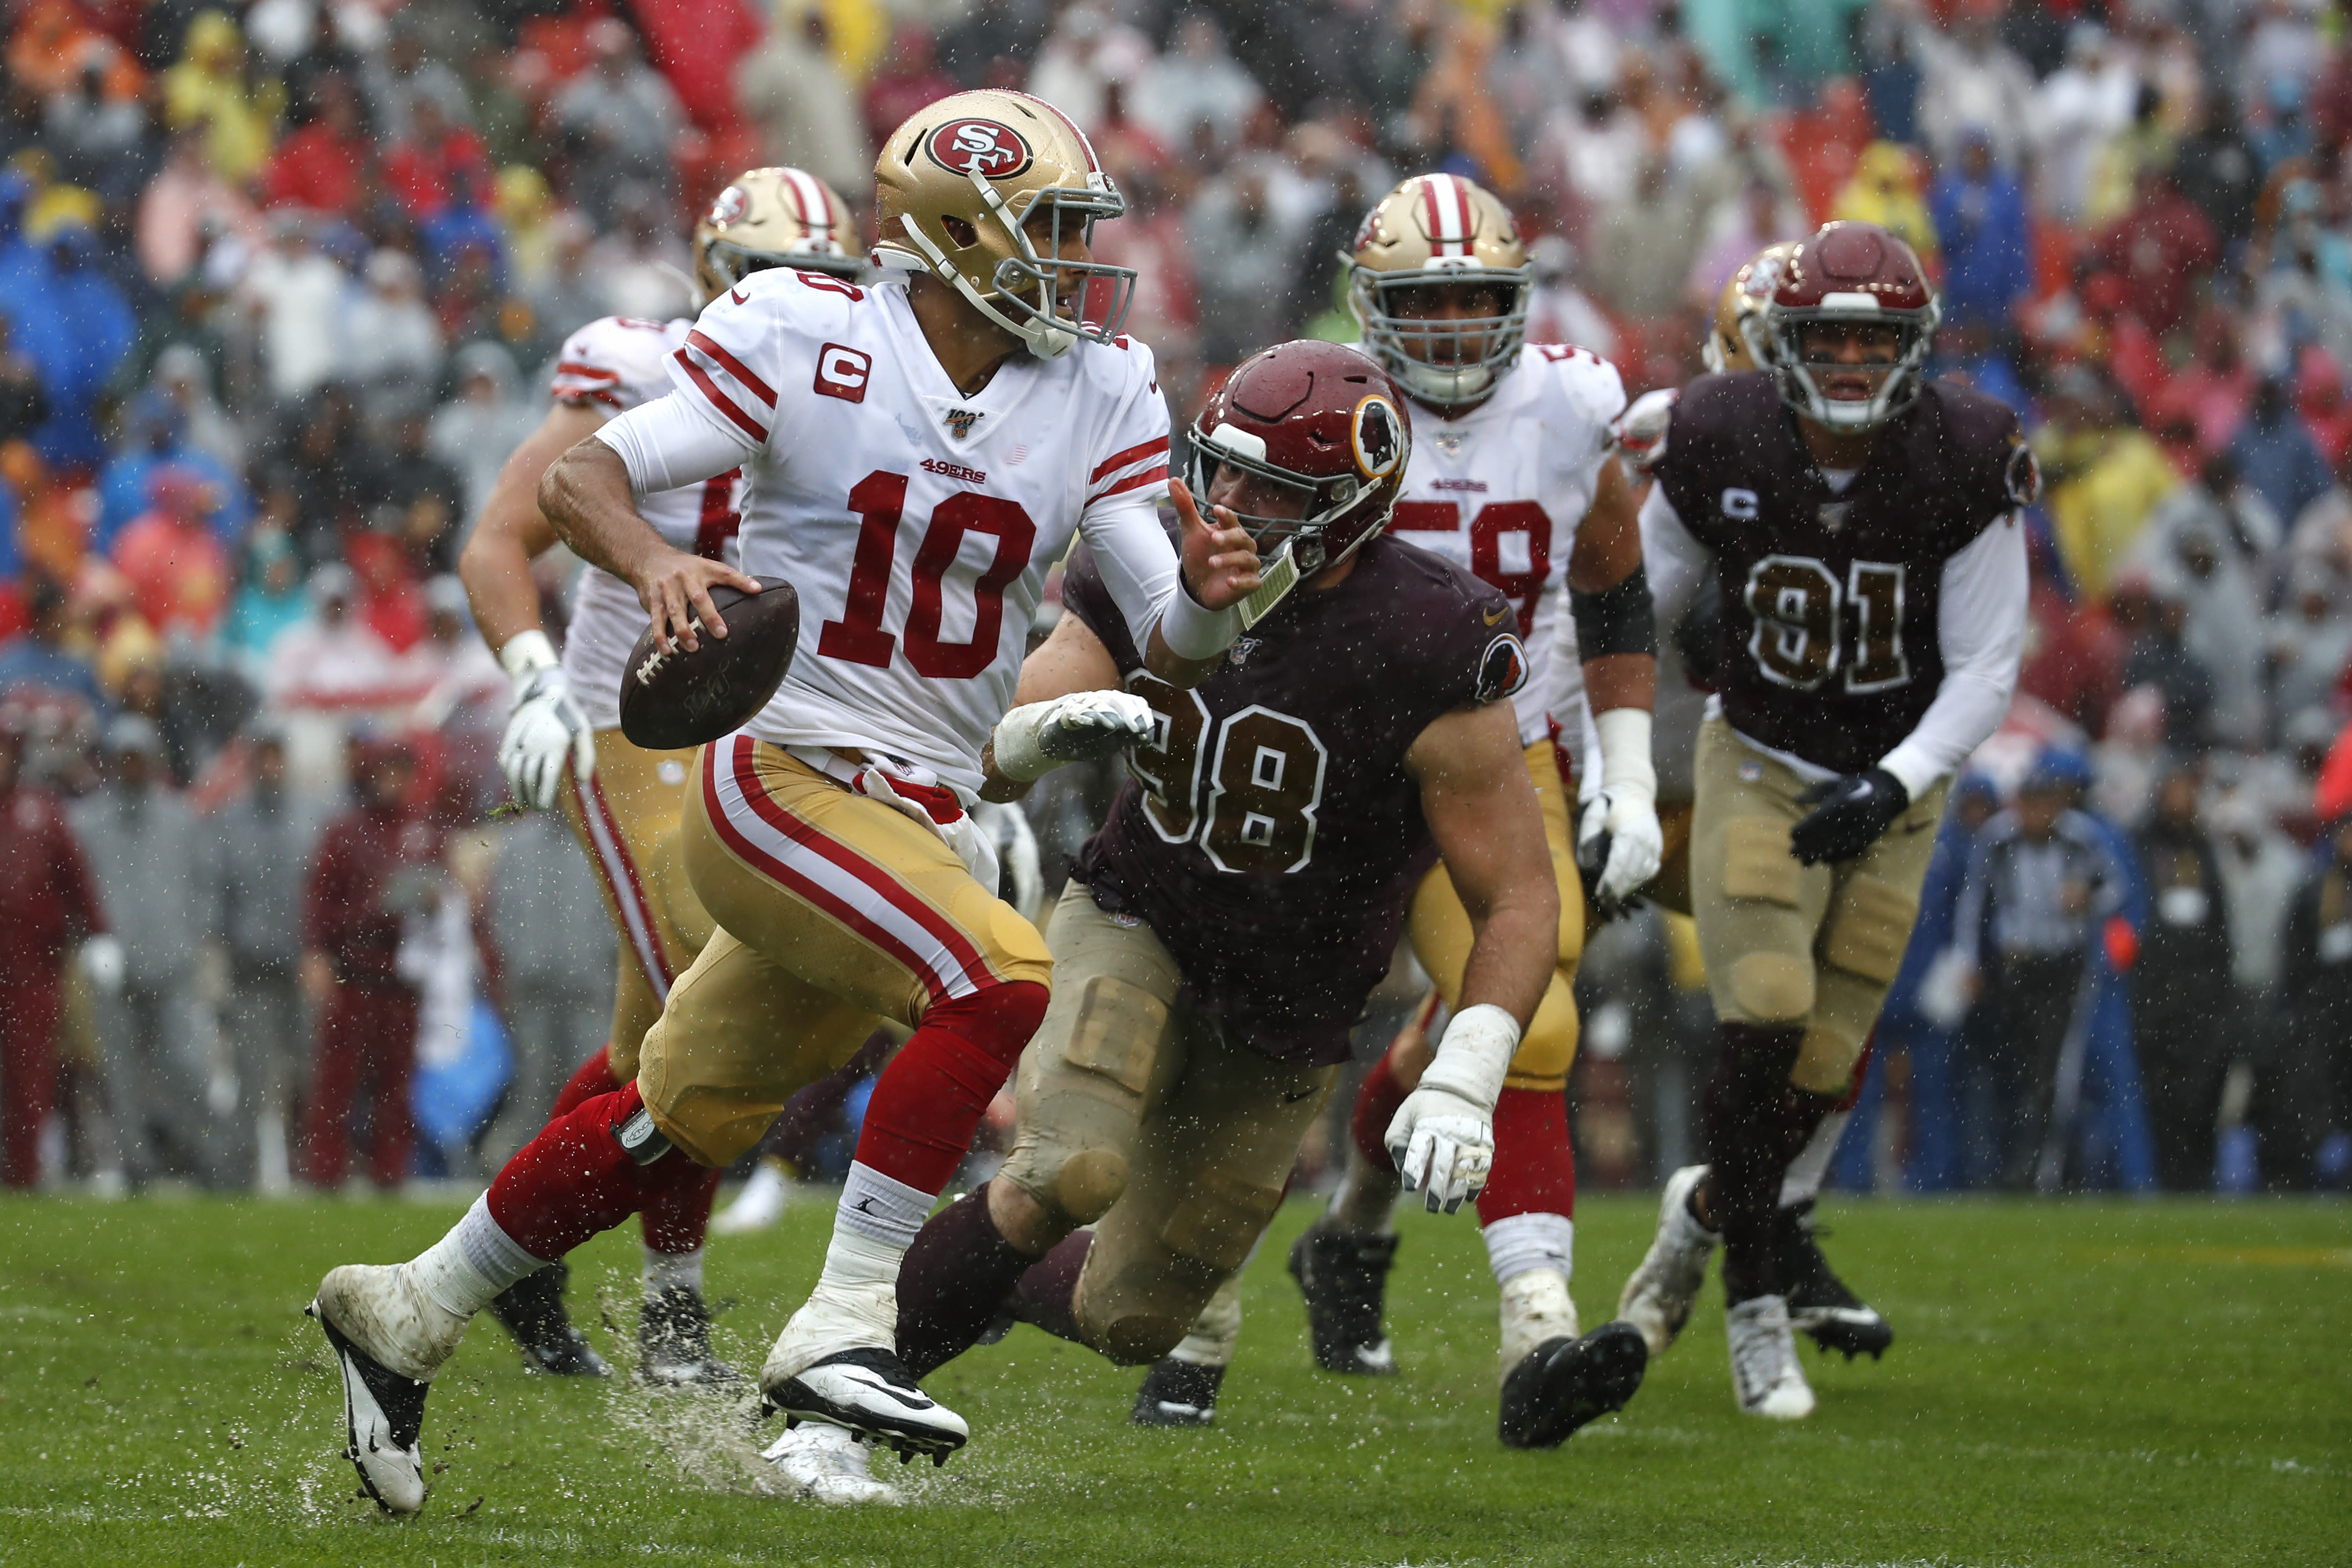 49ers' aim for 7-0 start, with streaking Panthers in way